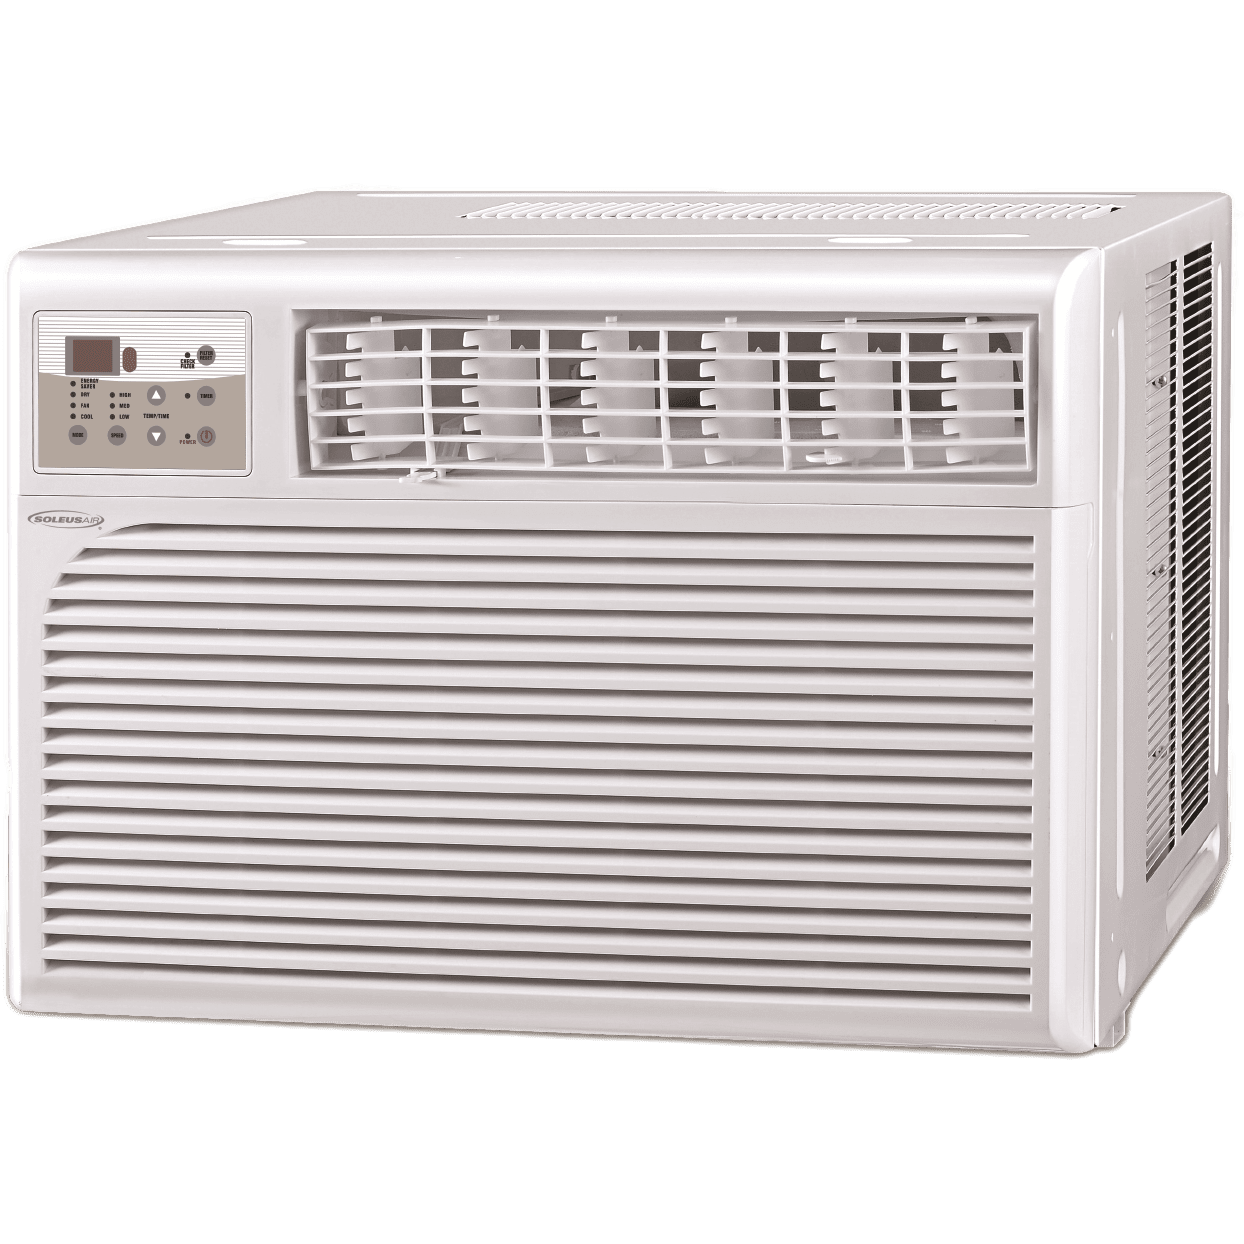 Soleus Air HCC W15ES A1 Window Air Conditioner